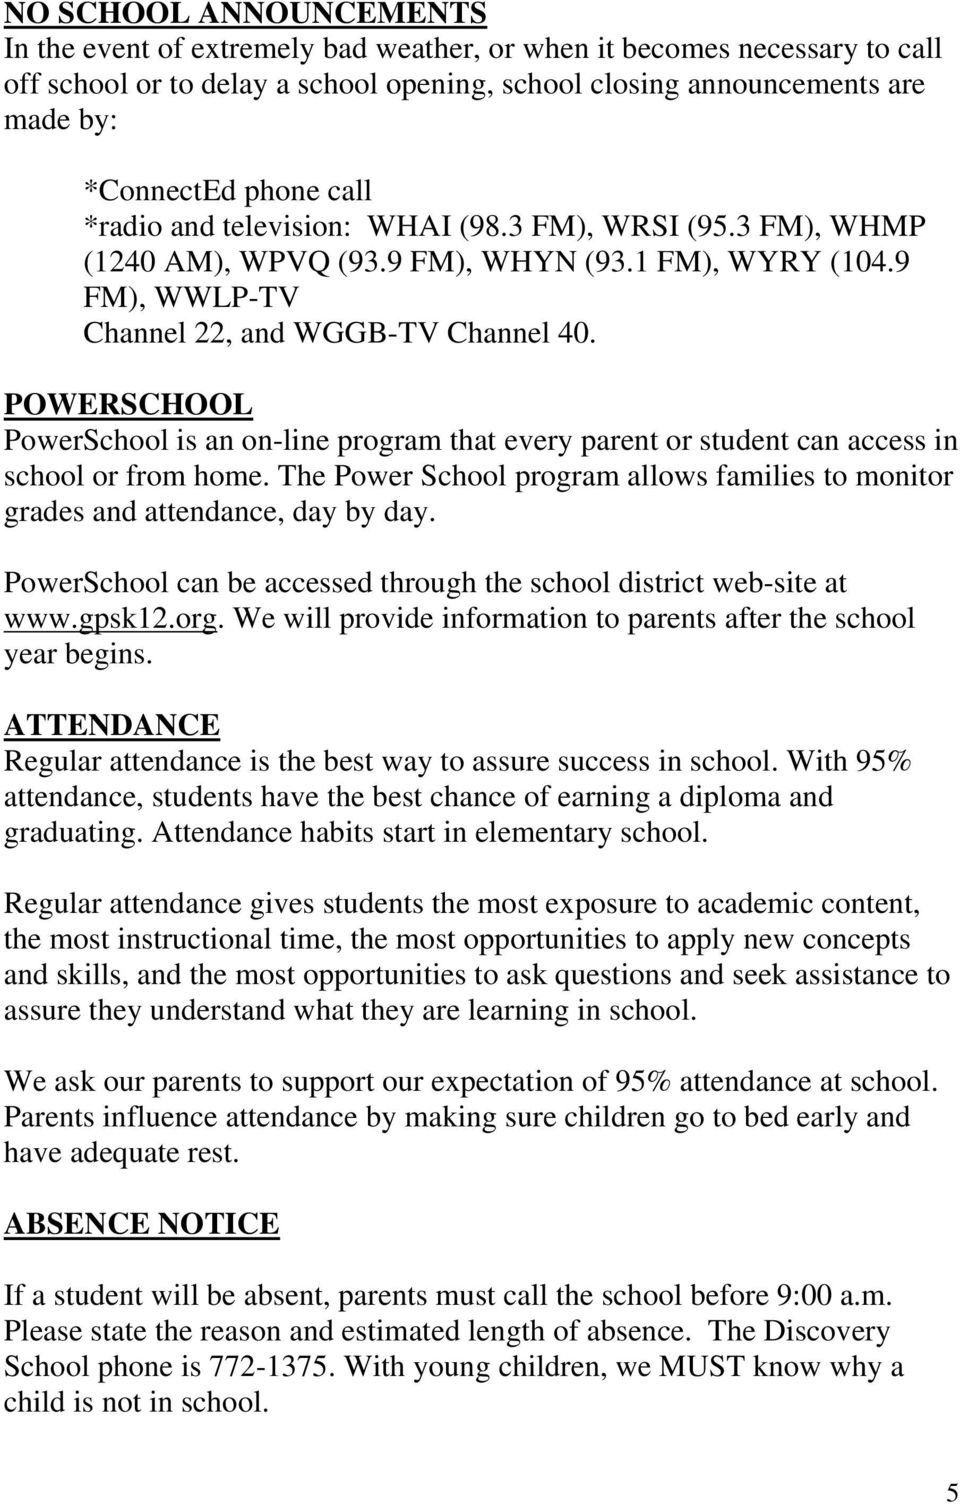 POWERSCHOOL PowerSchool is an on-line program that every parent or student can access in school or from home. The Power School program allows families to monitor grades and attendance, day by day.